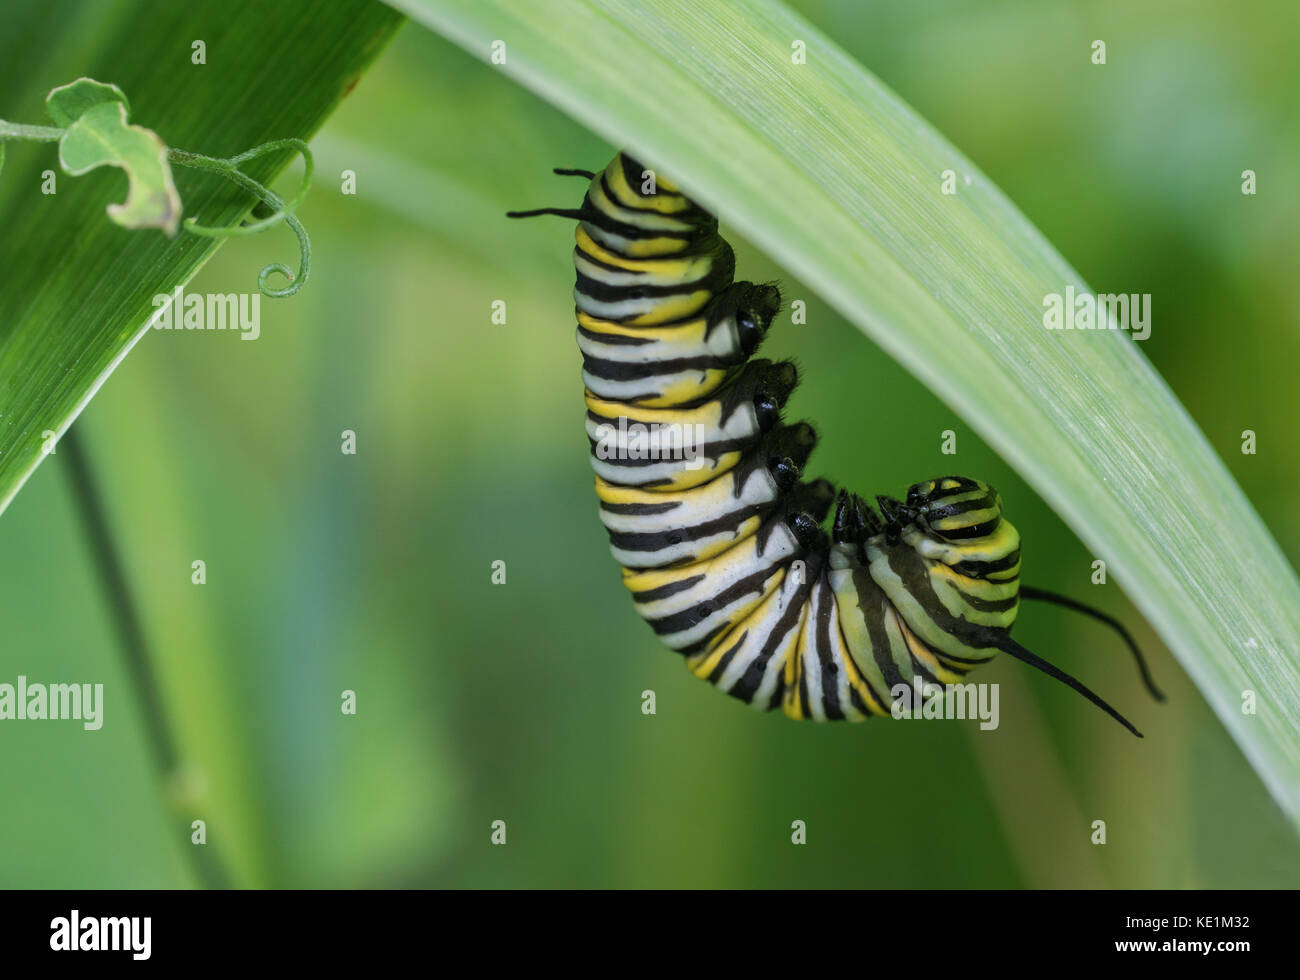 Monarch Caterpillar, pre chrysalis stage, hanging on leaf in Ontario, Canada Stock Photo